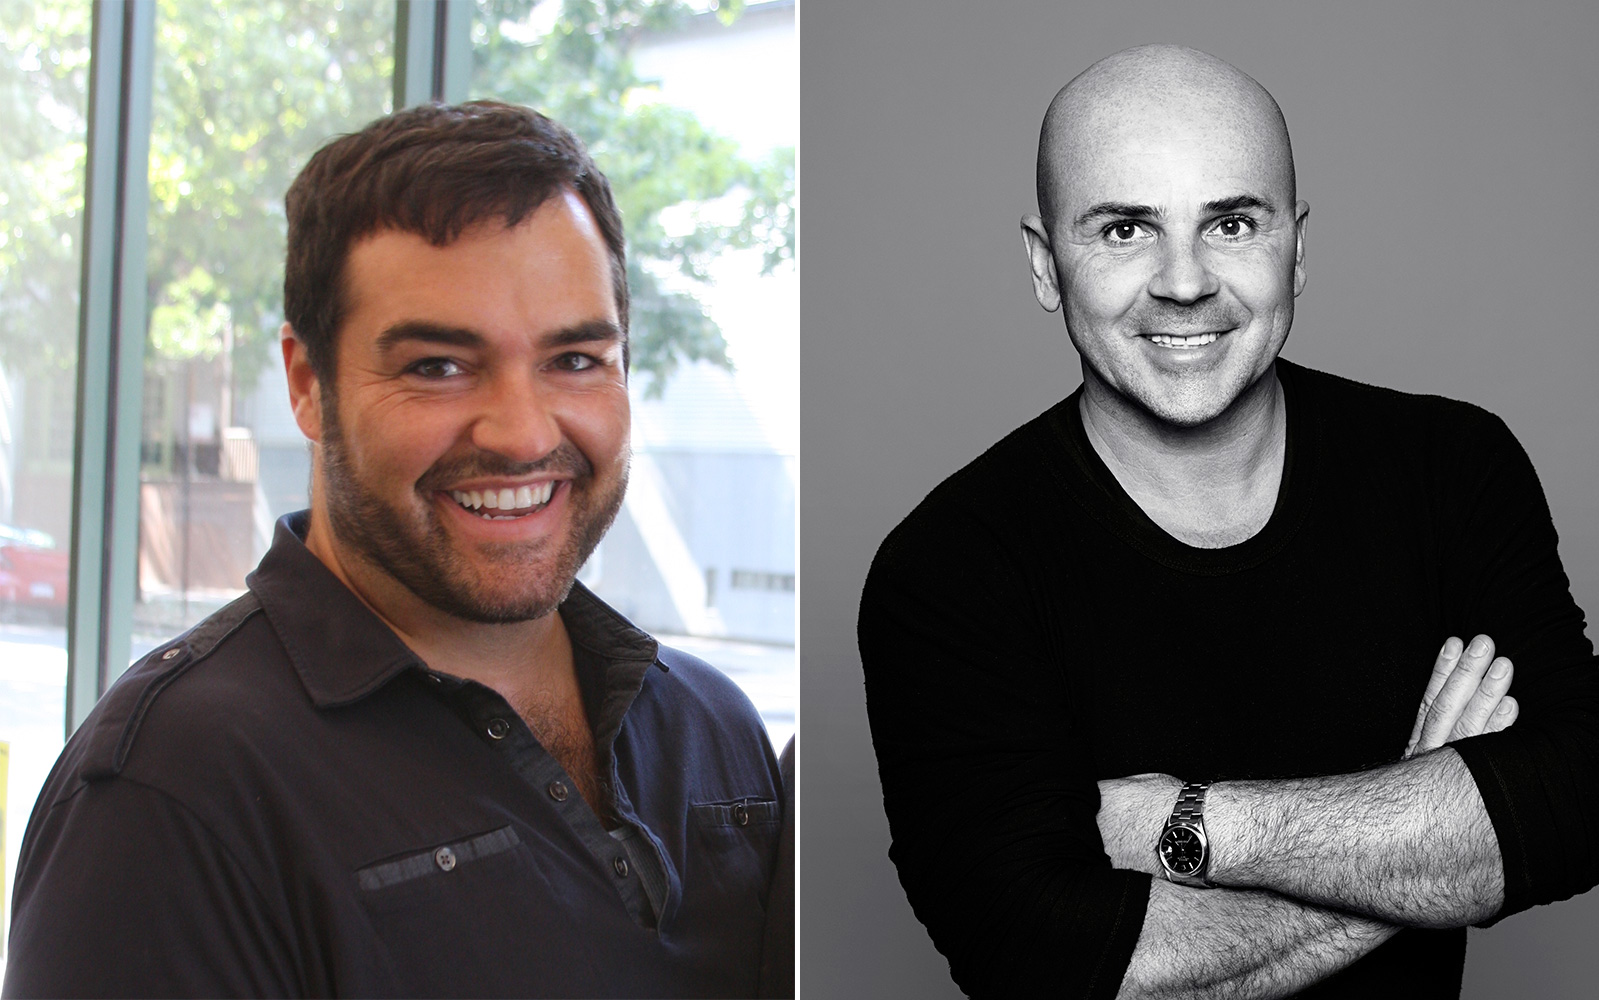 Celebrity Stylists Dean Banowetz (left) and Giannandrea (right)